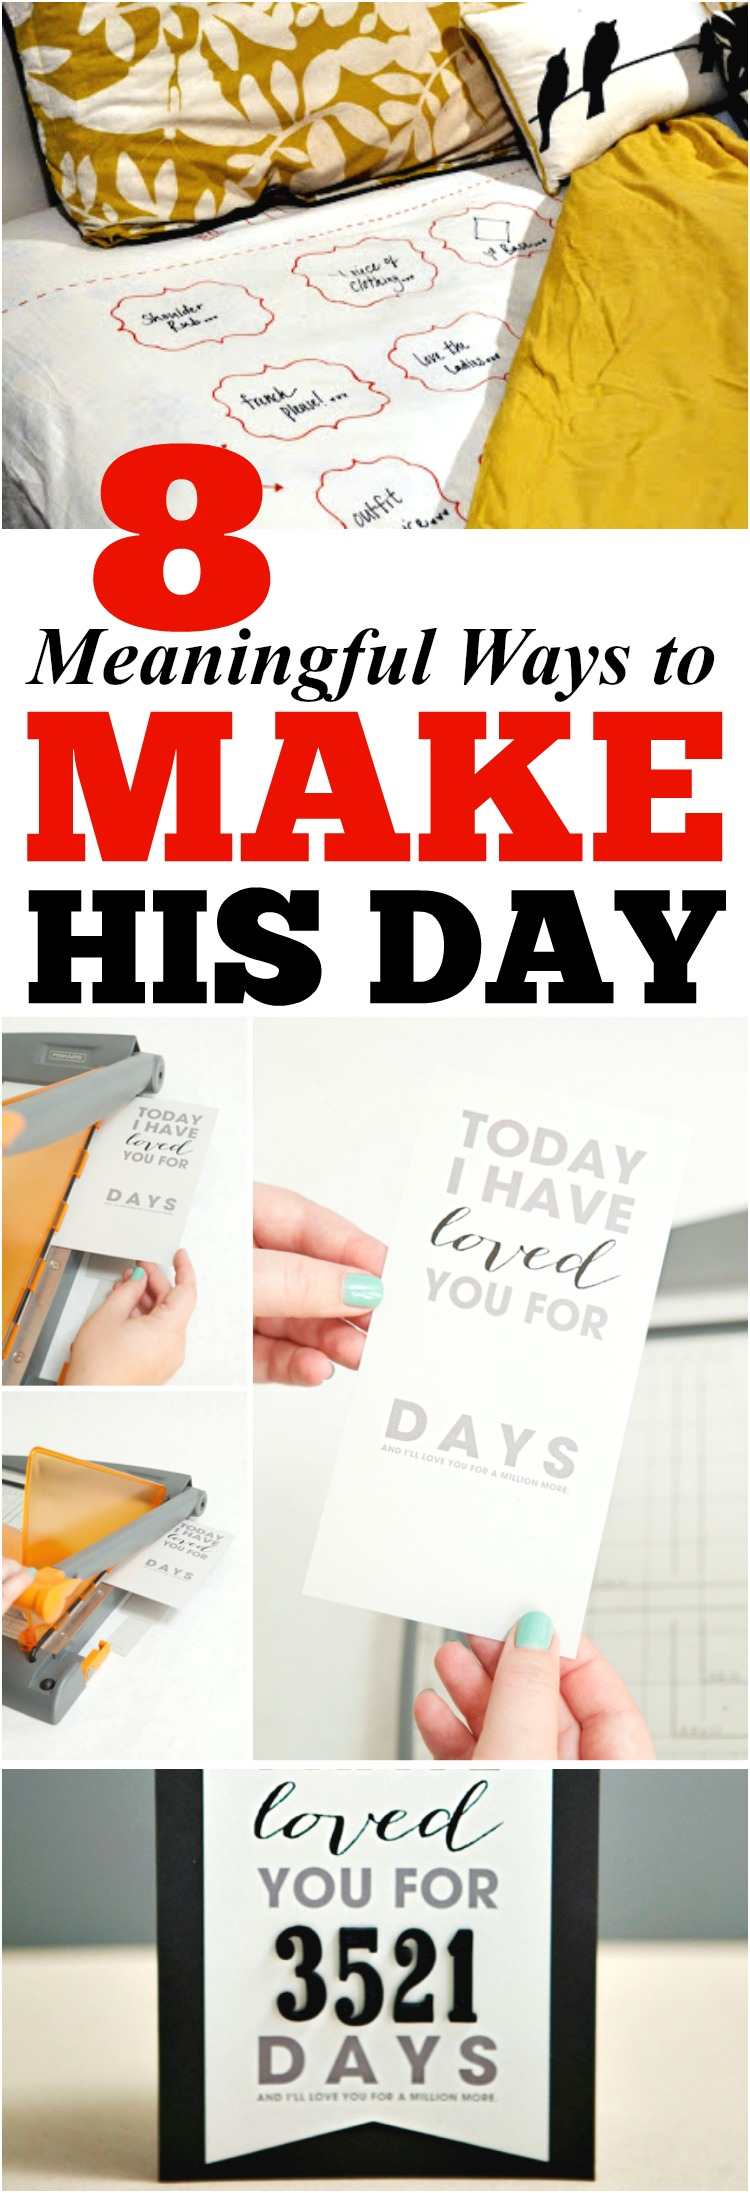 8 Meaningful Ways to Make His Day - The Realistic Mama